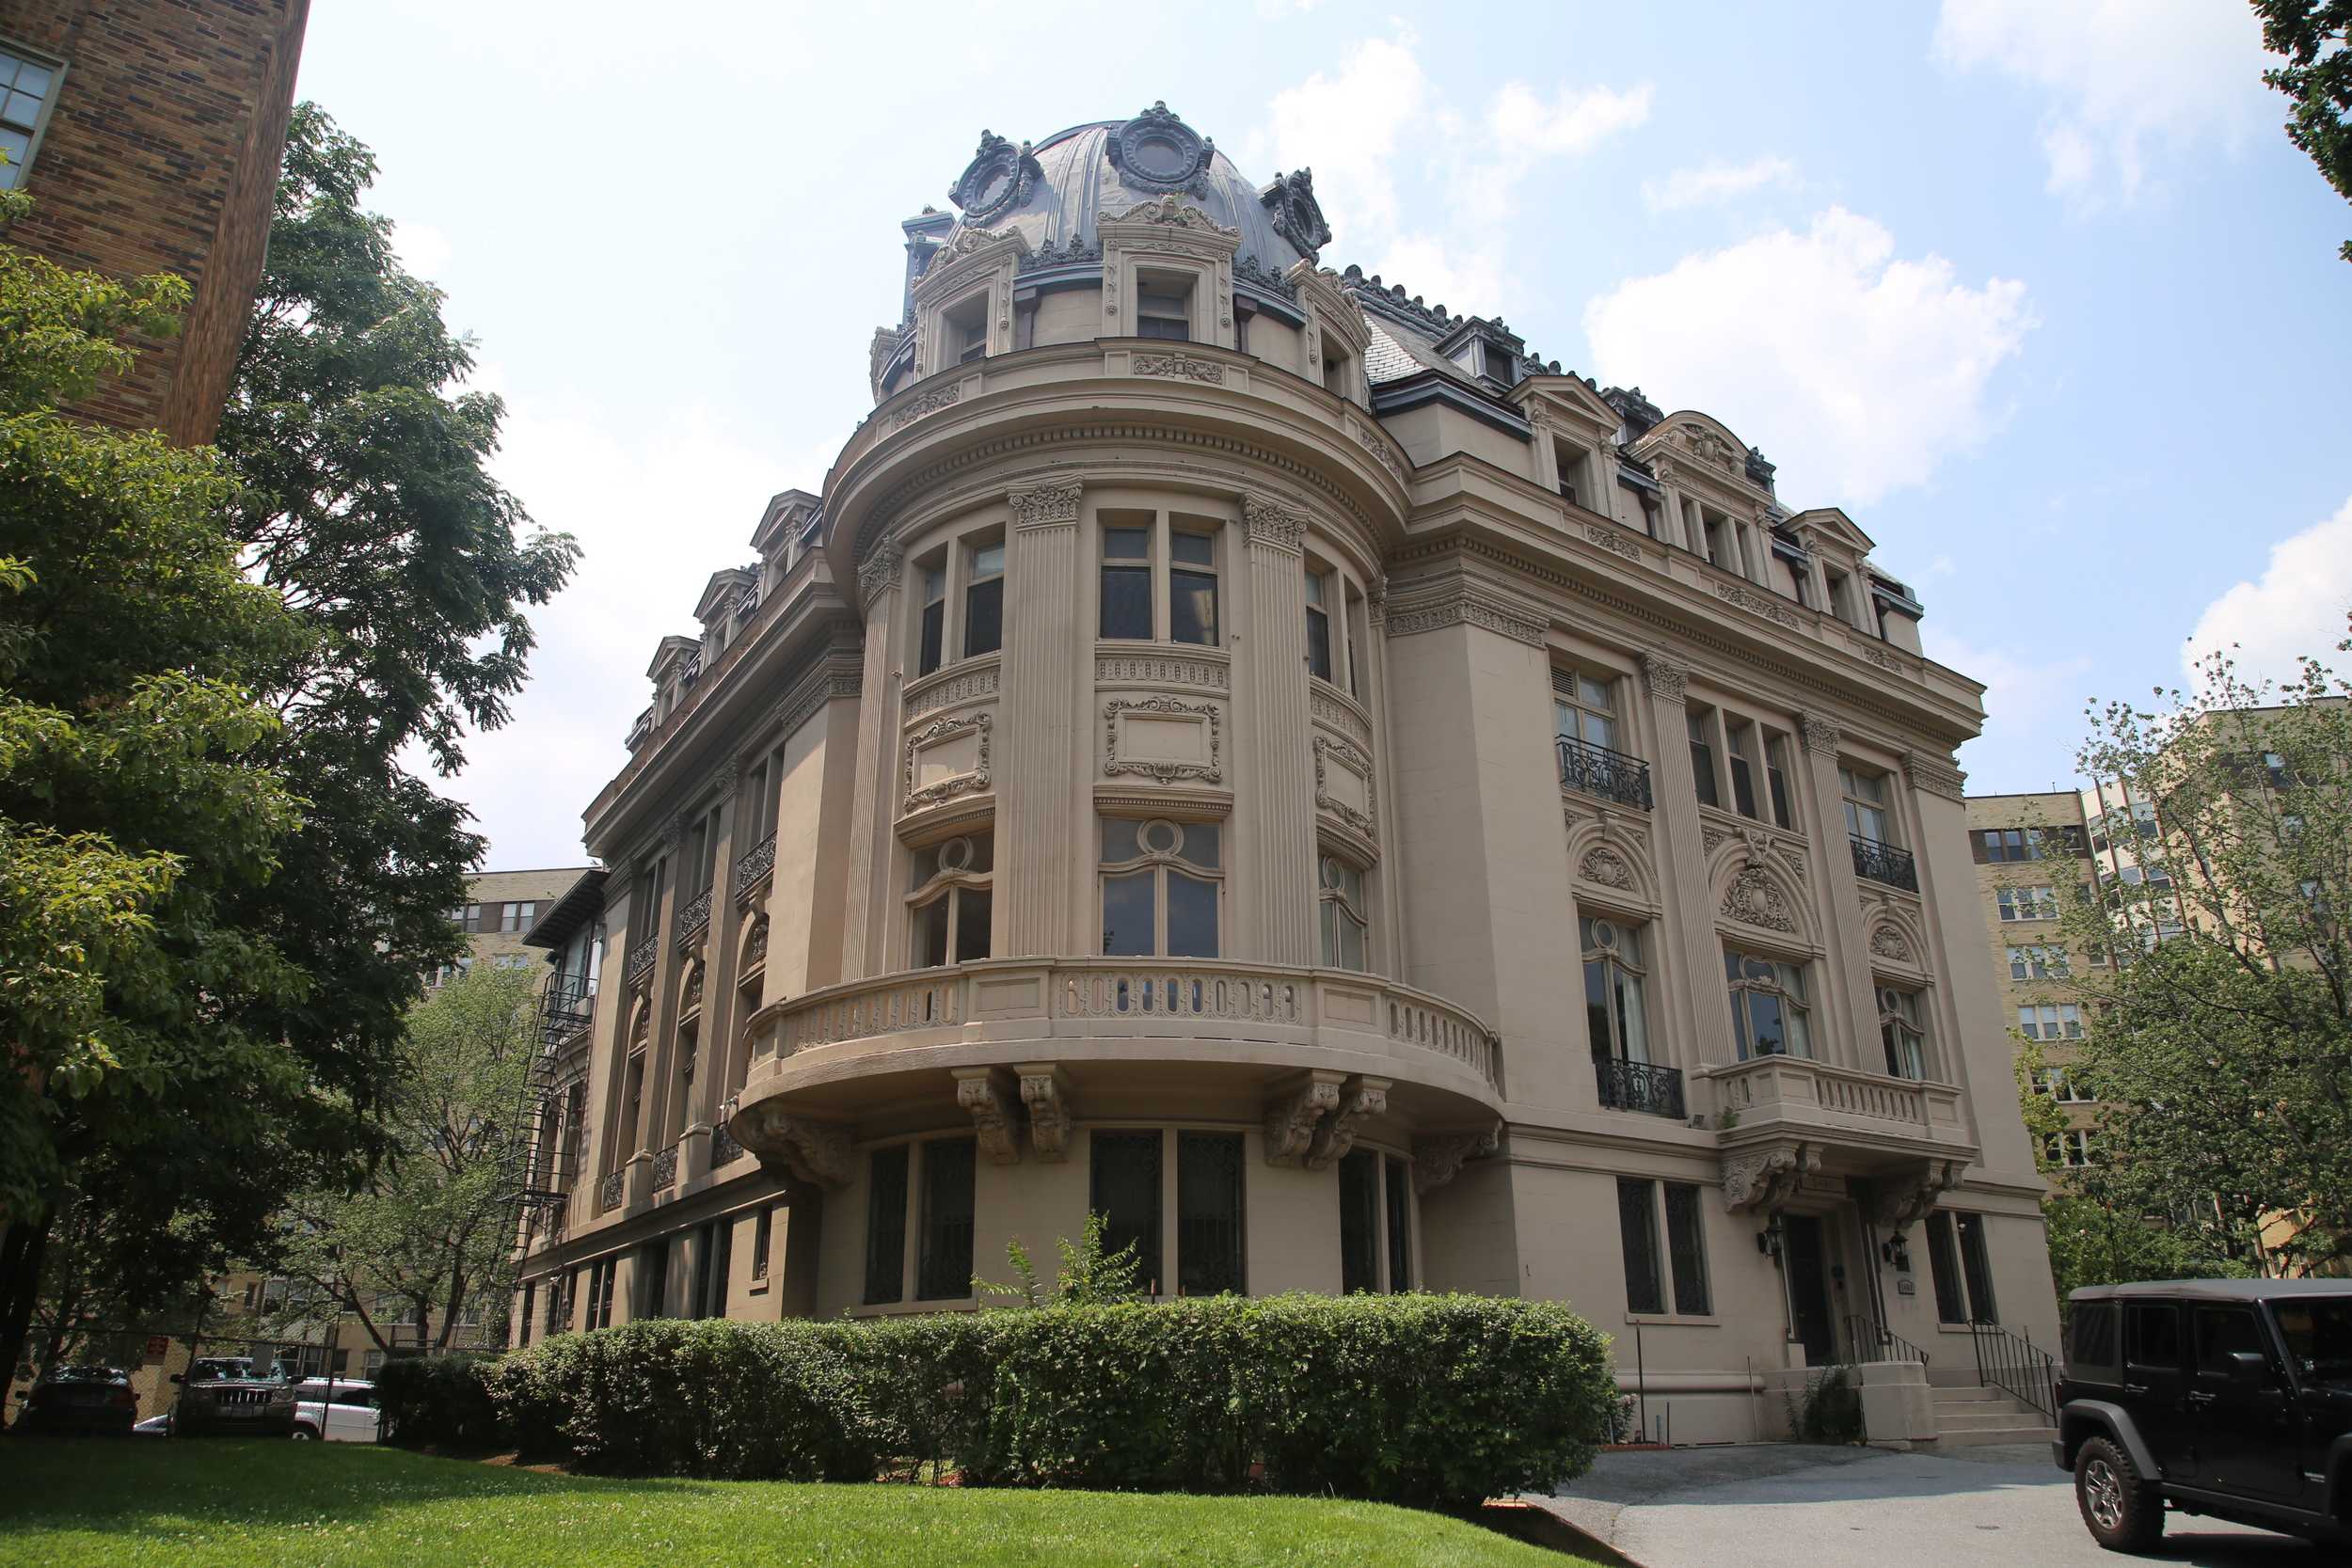 Vichy France Embassy - 16th St & Kalorama Rd., Meridian Hill, Washington, D.C. (today the Council for Professional Recognition)